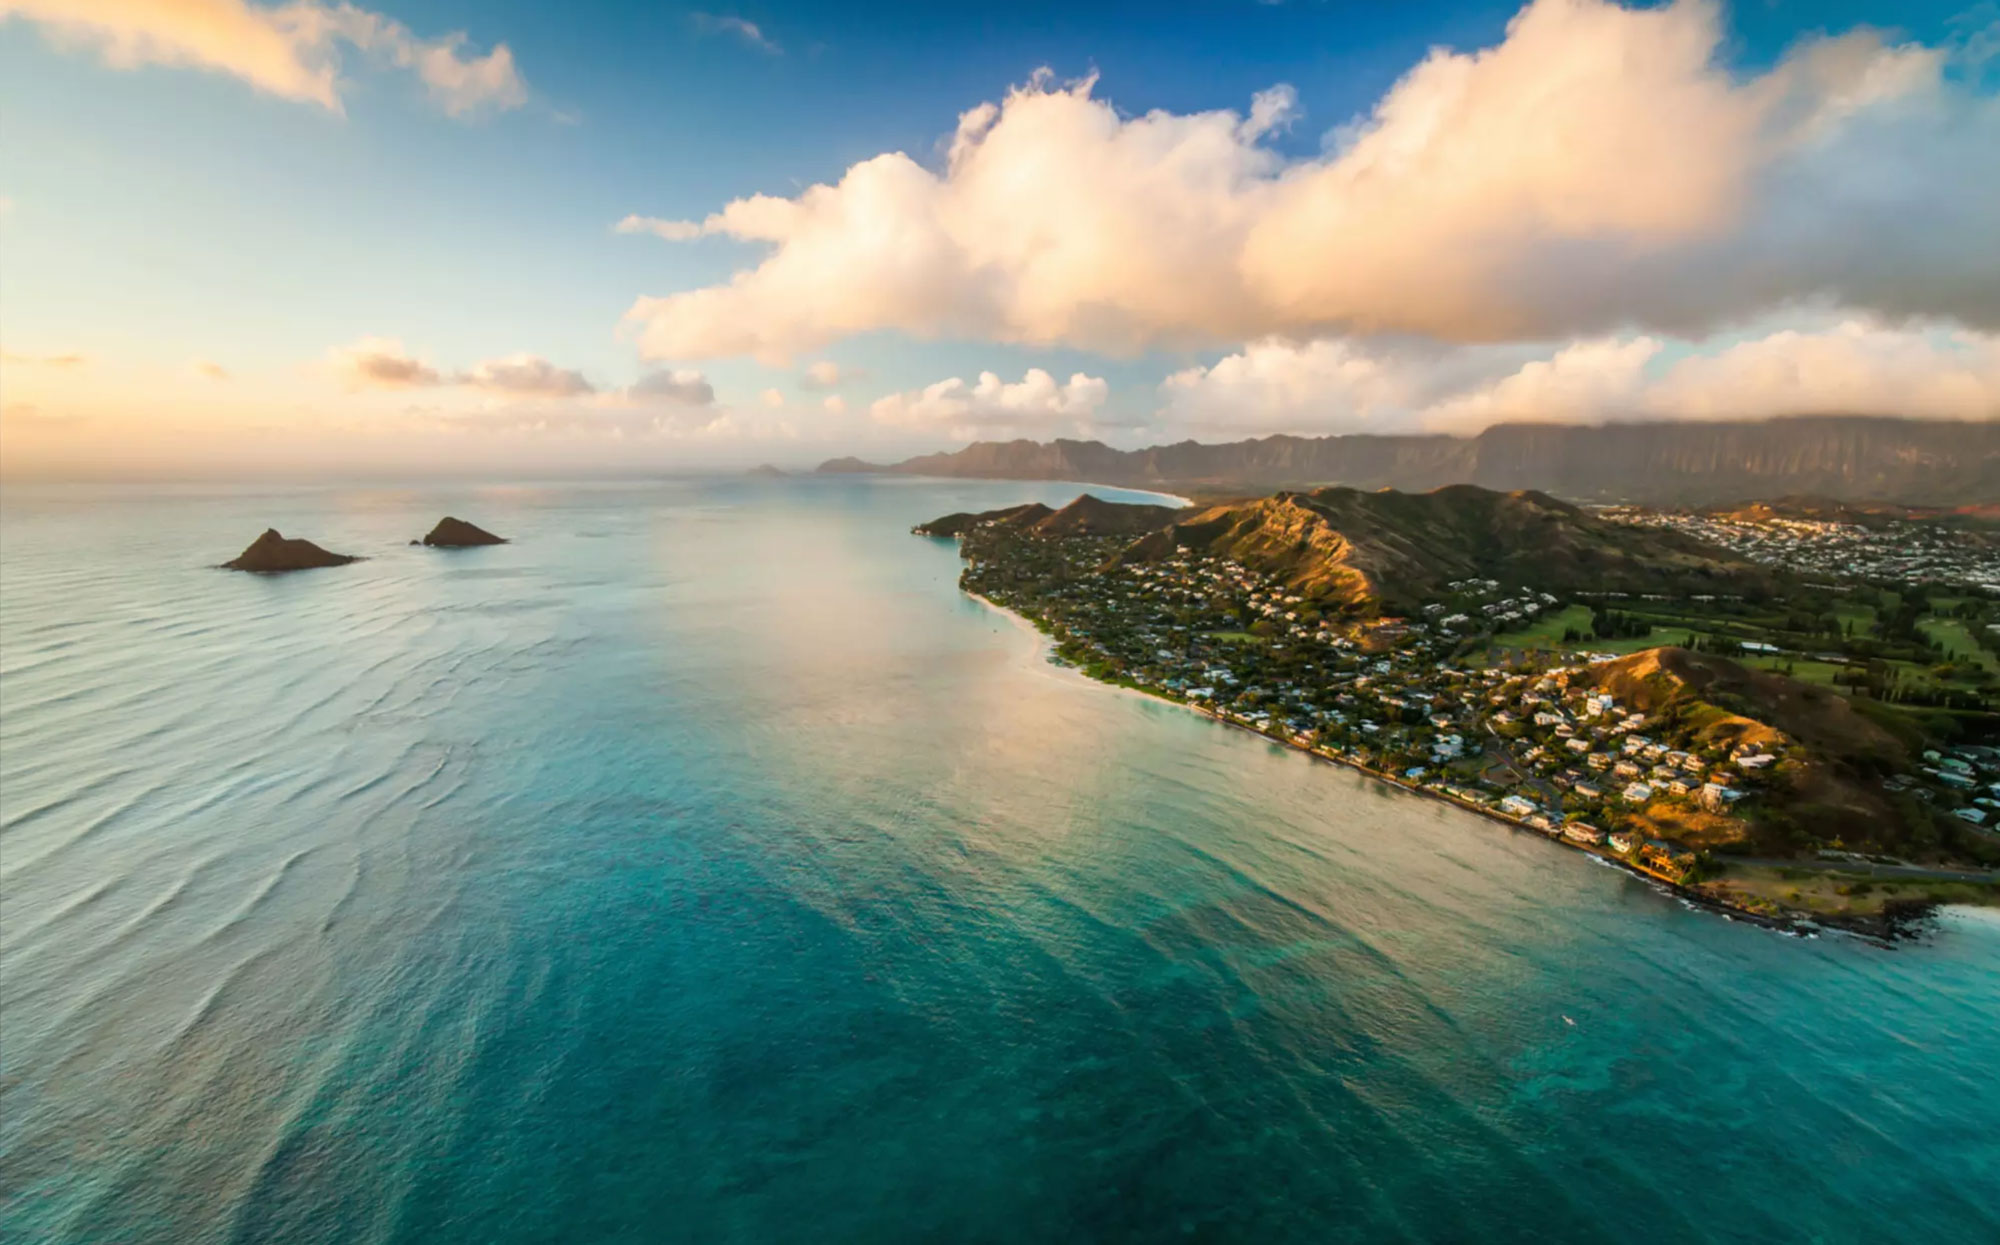 Lanikai - Lanikai is exclusively located along the shore in the scenic Kailua city, far from normal tourist attractions.